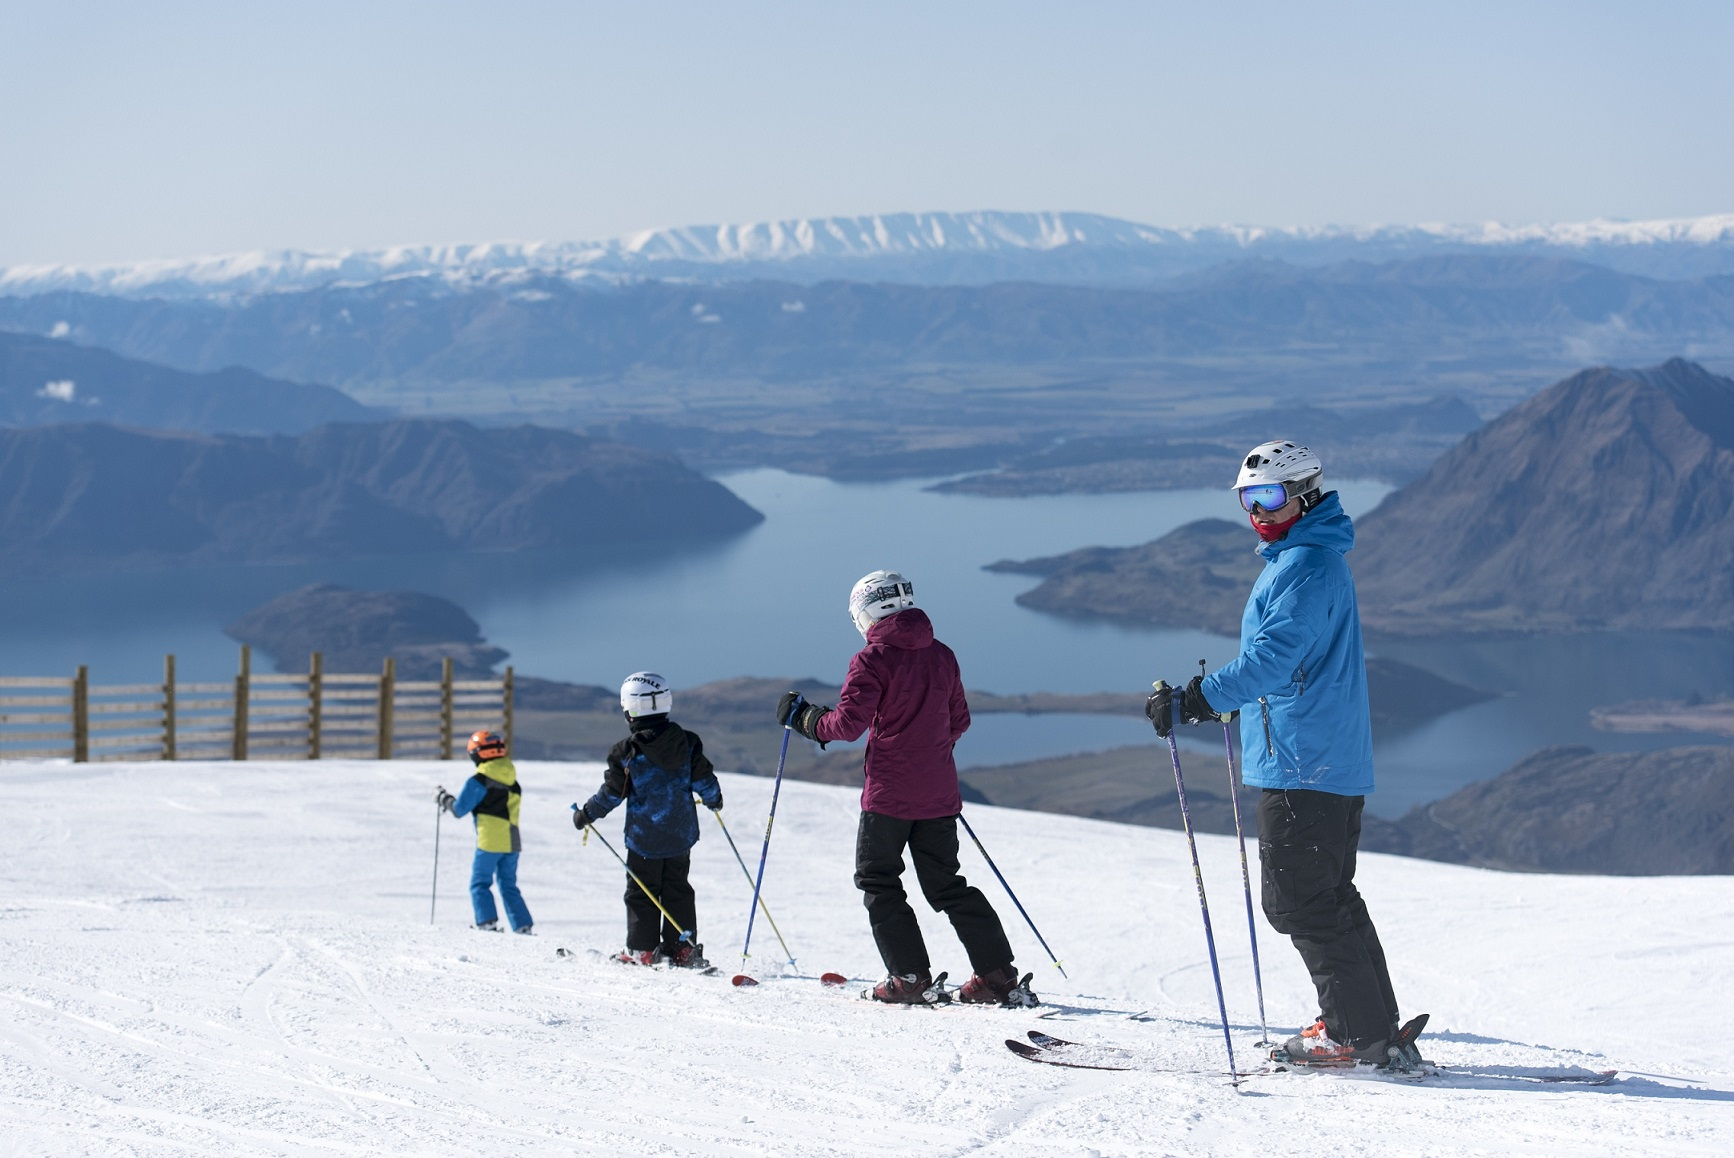 Skiing at Treble Cone